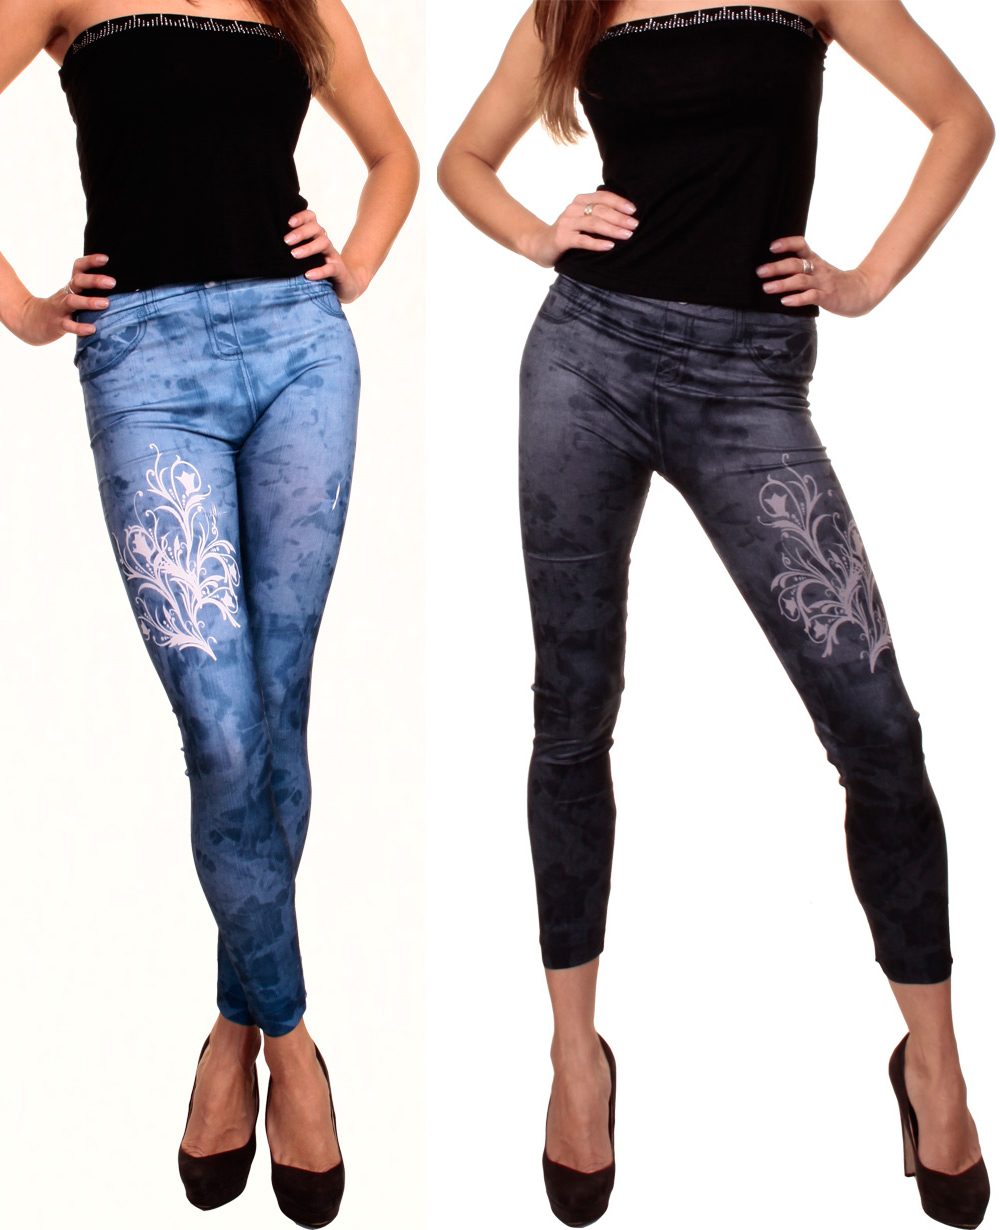 trendy leggings jeans look leggins used flecken blumen muster jeggins s m l hose ebay. Black Bedroom Furniture Sets. Home Design Ideas